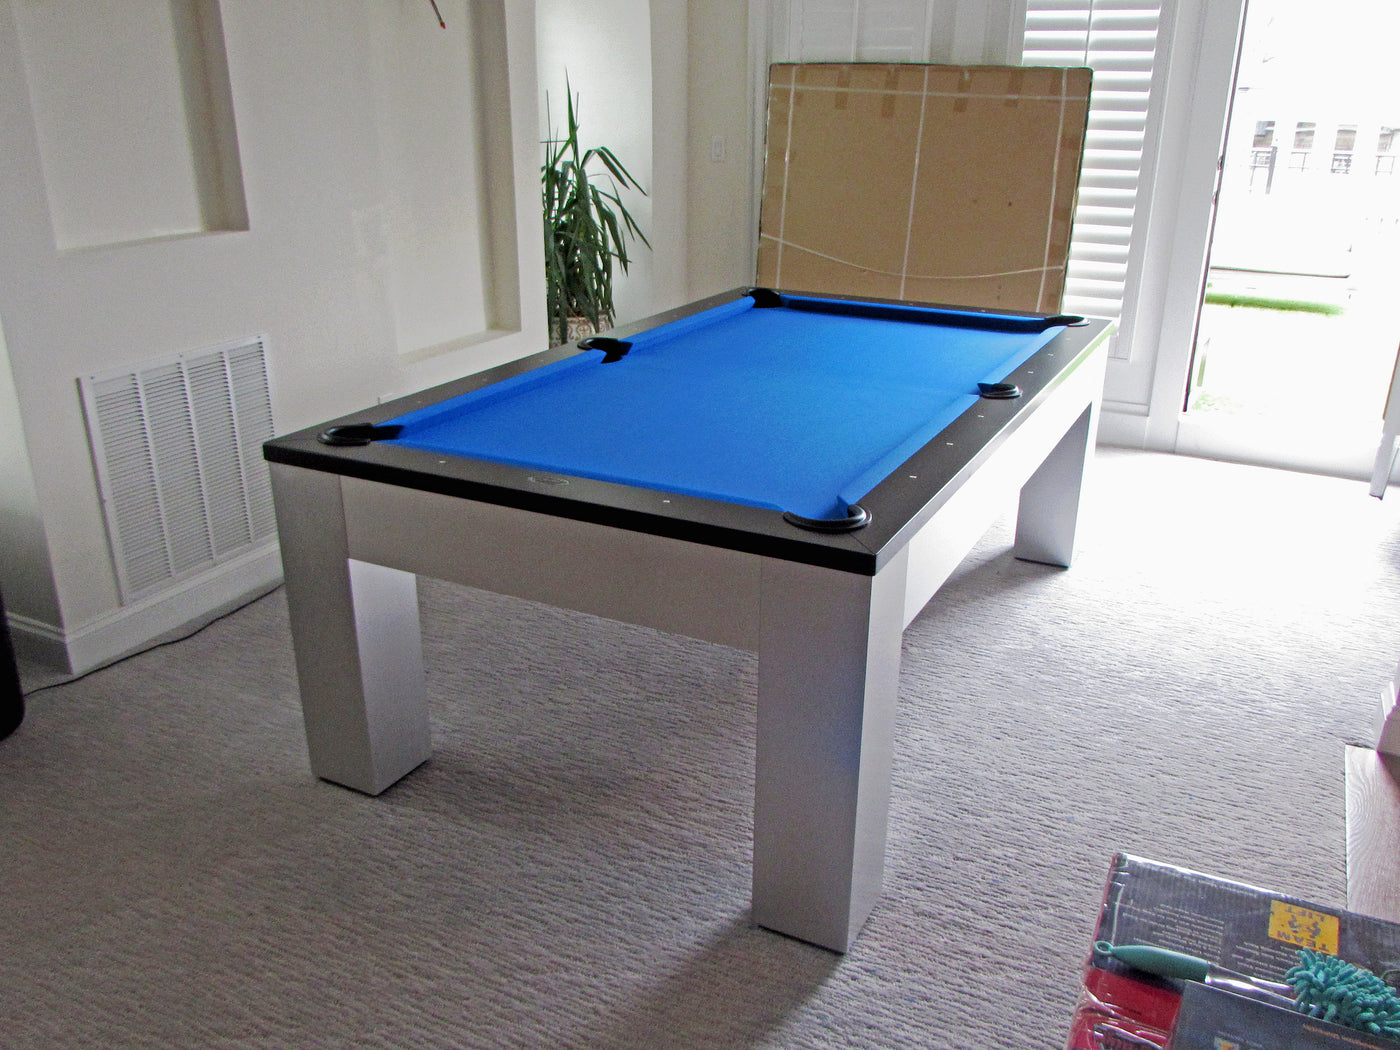 News Robbies Billiards - How much room is needed for a pool table